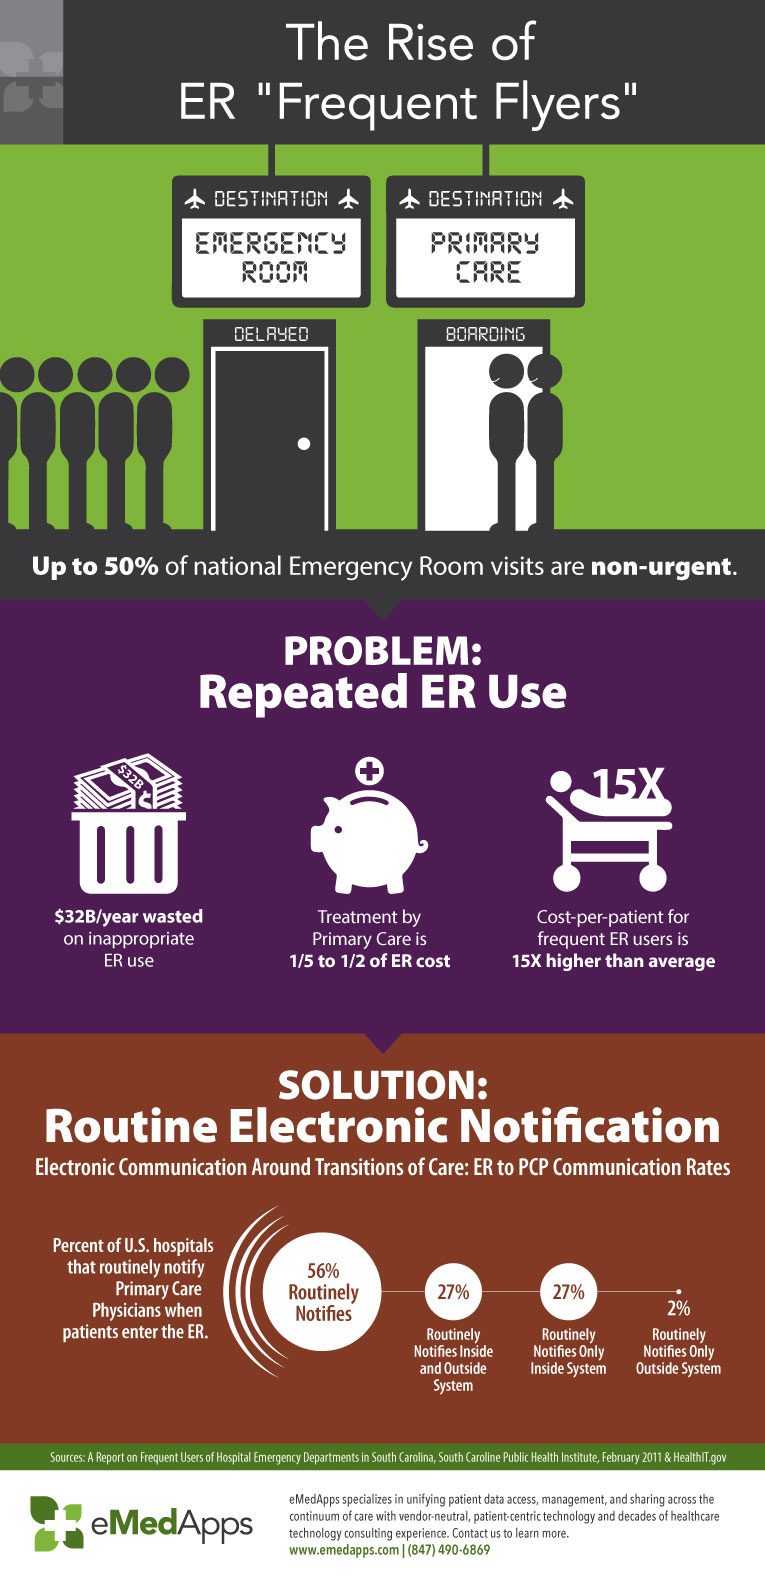 emedapps-infographic-the-rise-of-er-frequent-flyers-emedapps